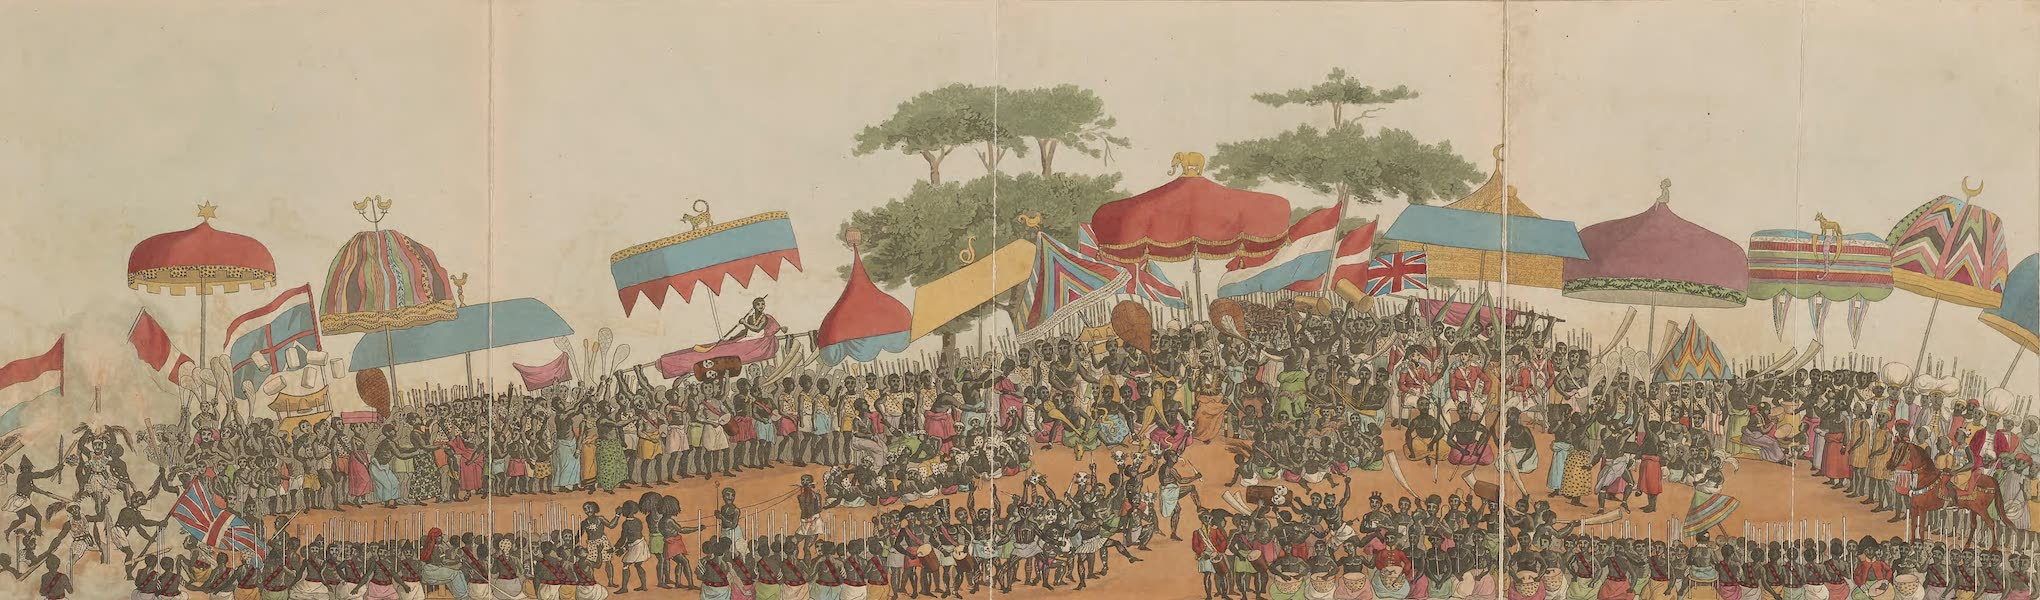 Mission from Cape Coast Castle to Ashantee - The First Day of the Yam Custom (1819)